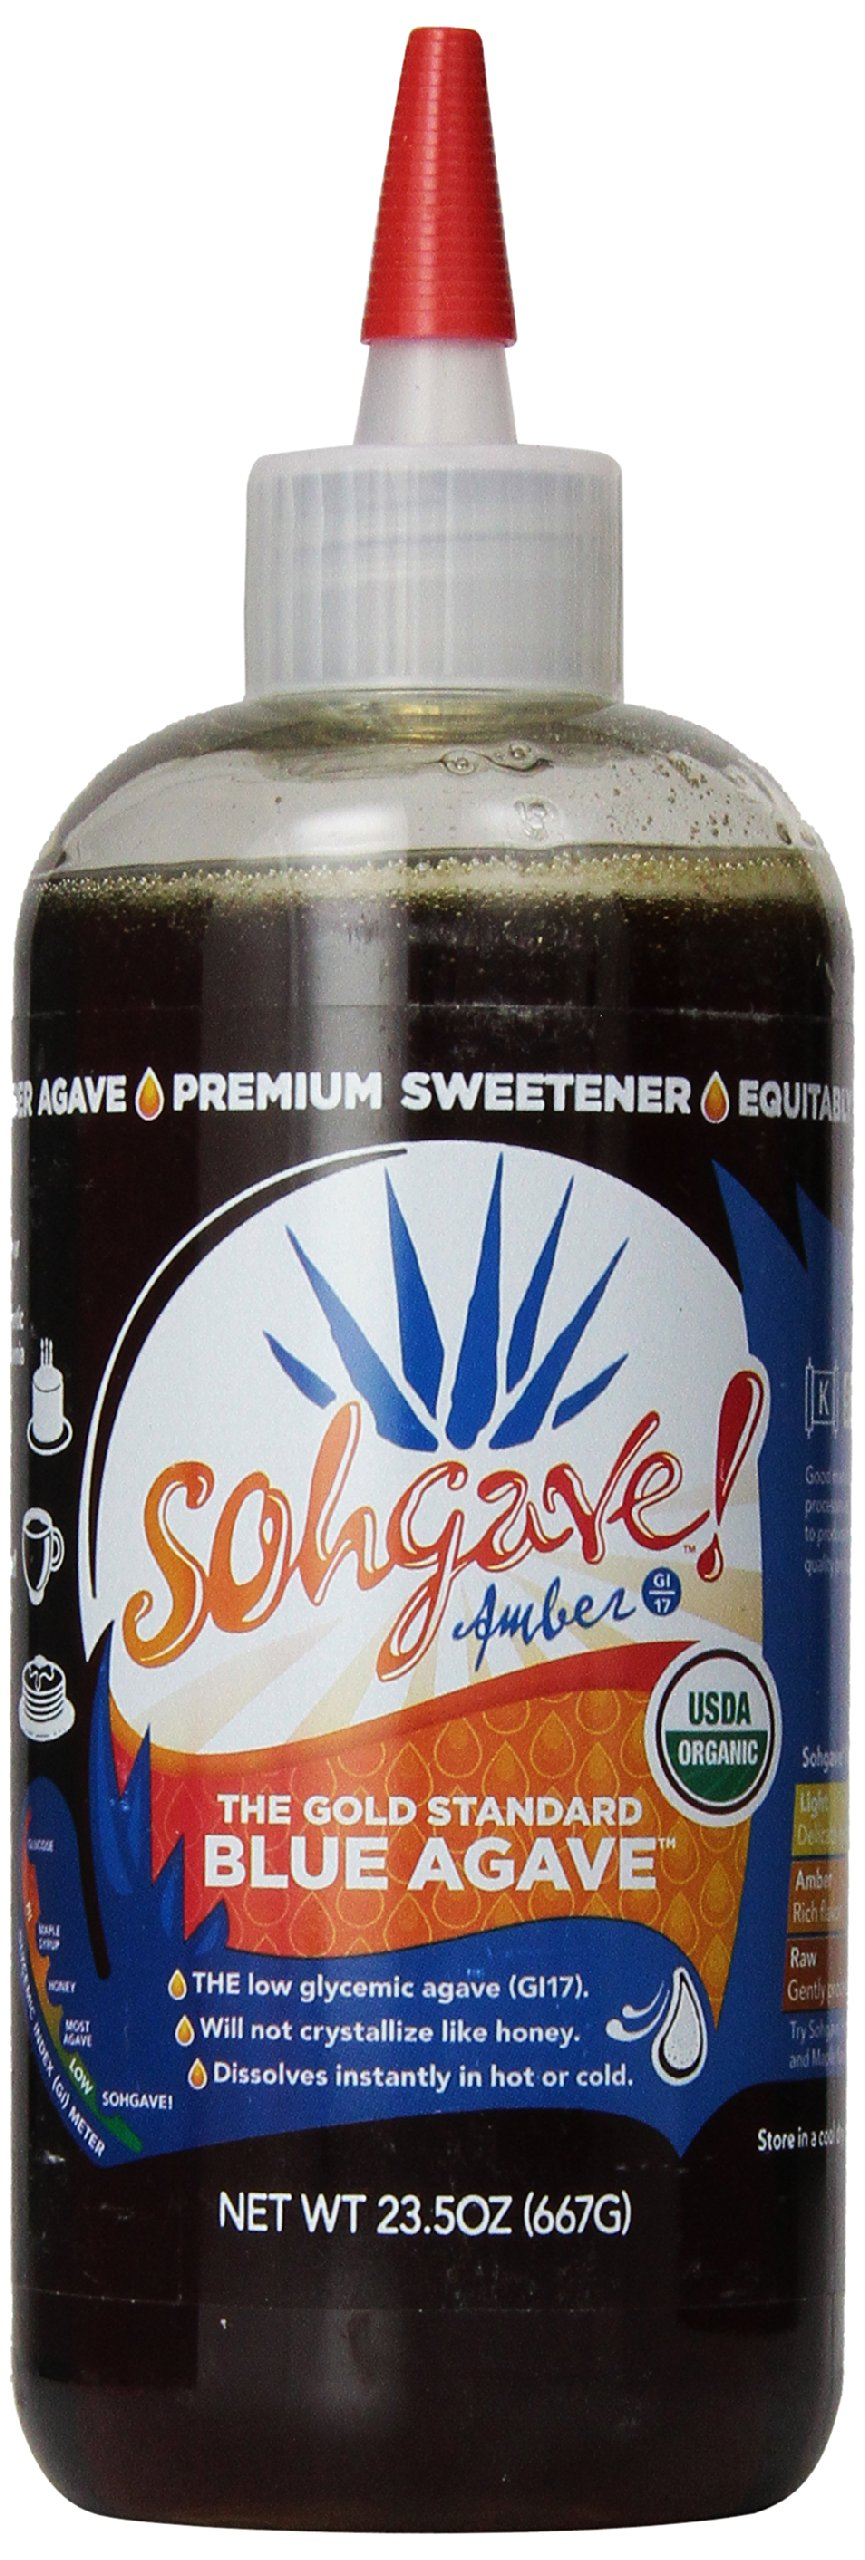 Sohgave! Premium Blue Agave, Amber, 23.5-Ounce Bottles (Pack of 6)